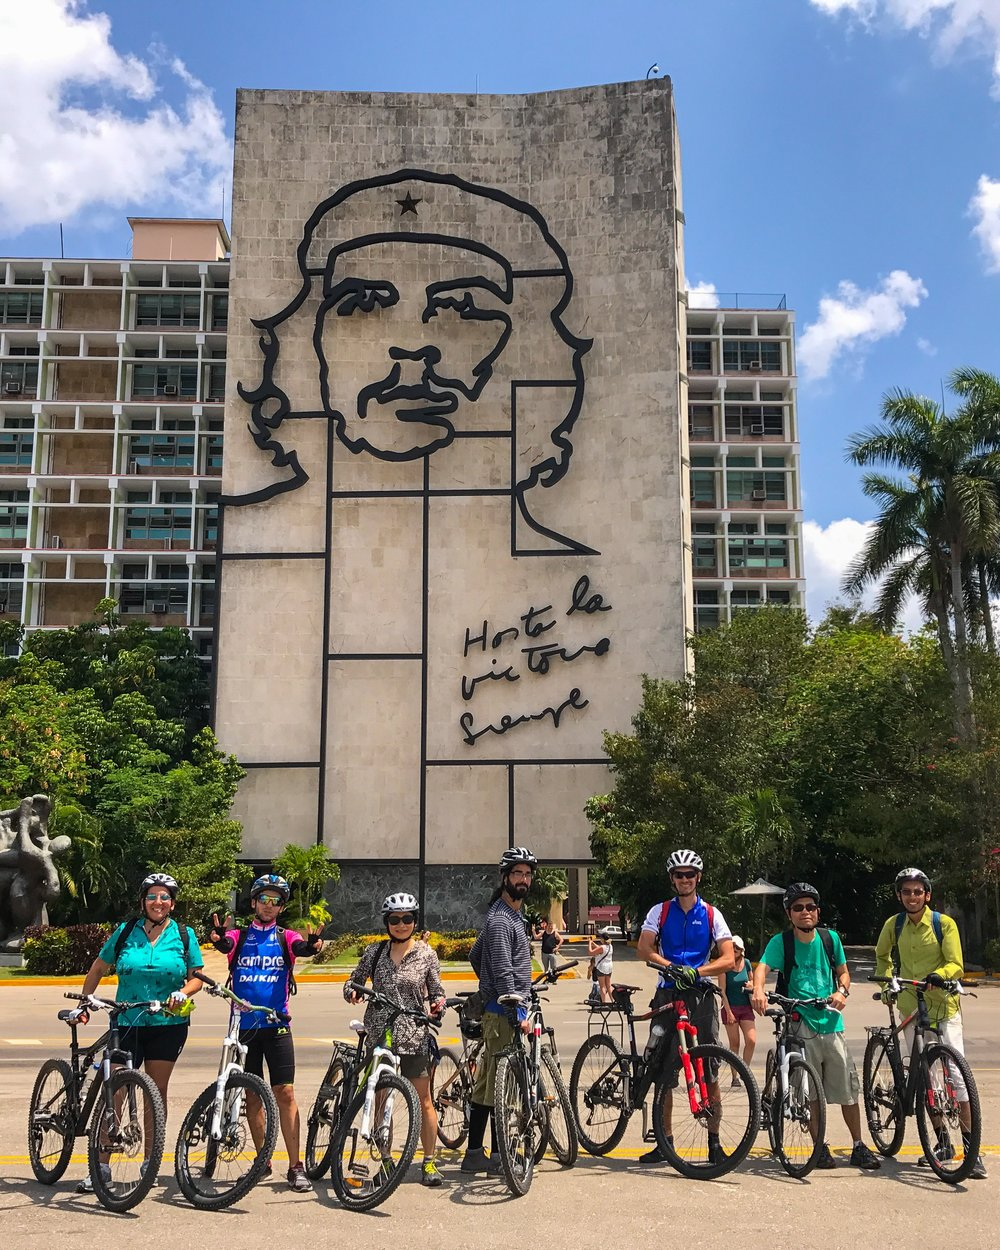 Havana bike tour visits Che Guevara at Revolution Plaza